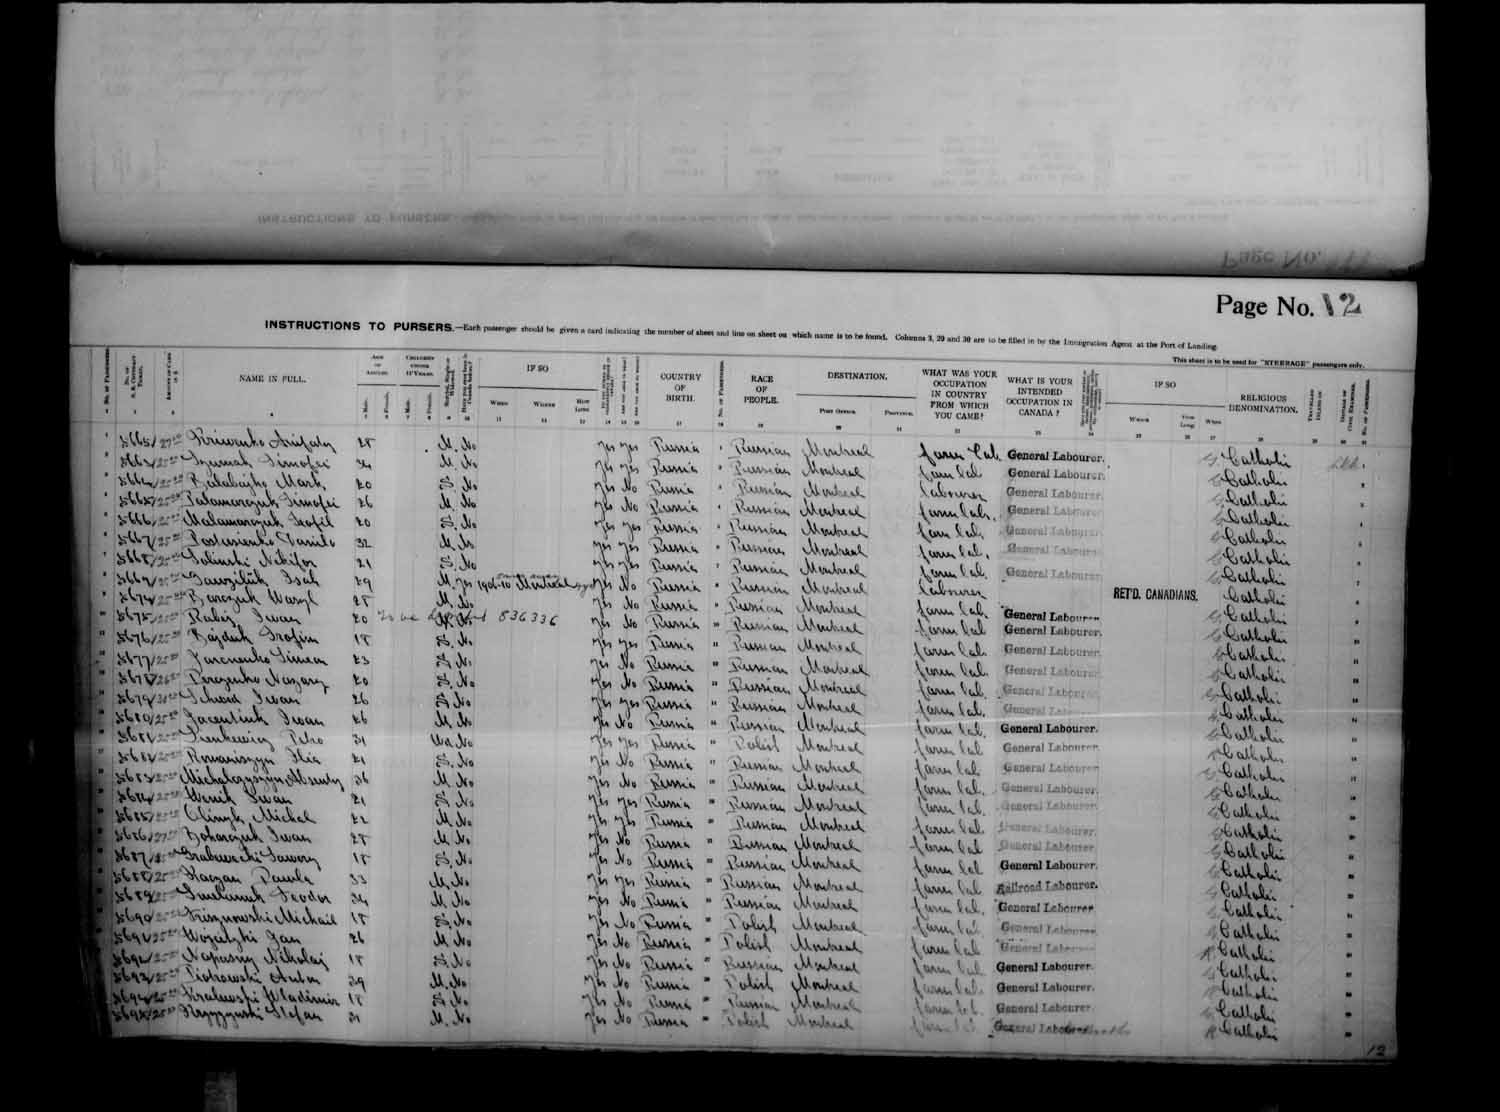 Digitized page of Passenger Lists for Image No.: e003686920